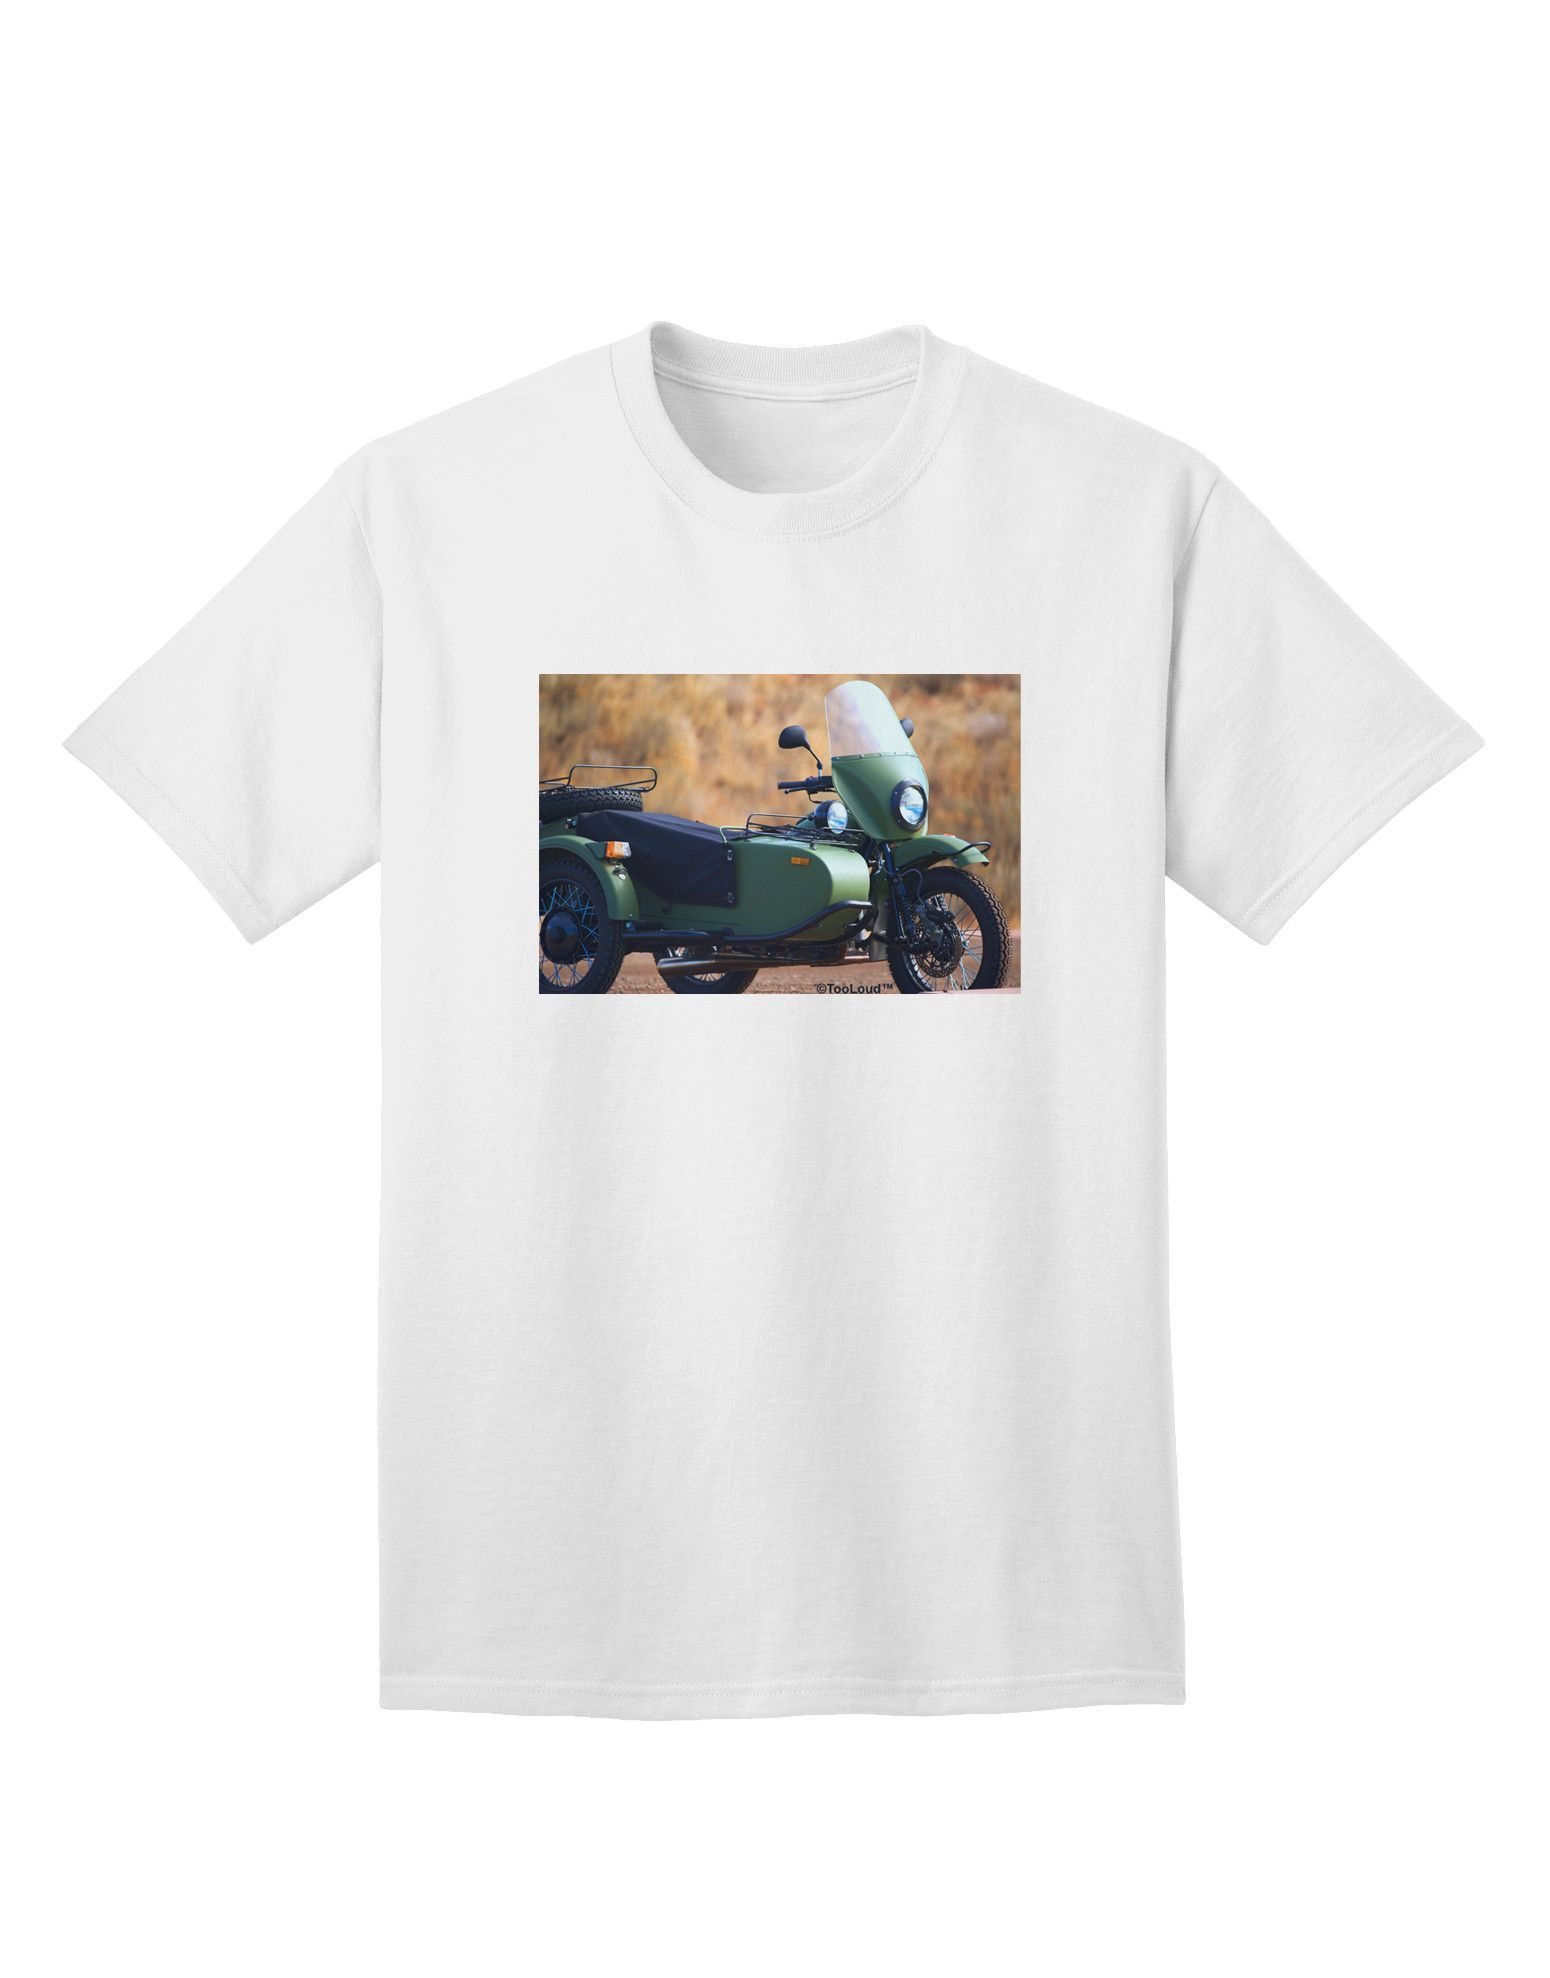 Sidecar Motorcycle Photo Adult T-Shirt | Sidecar and Products